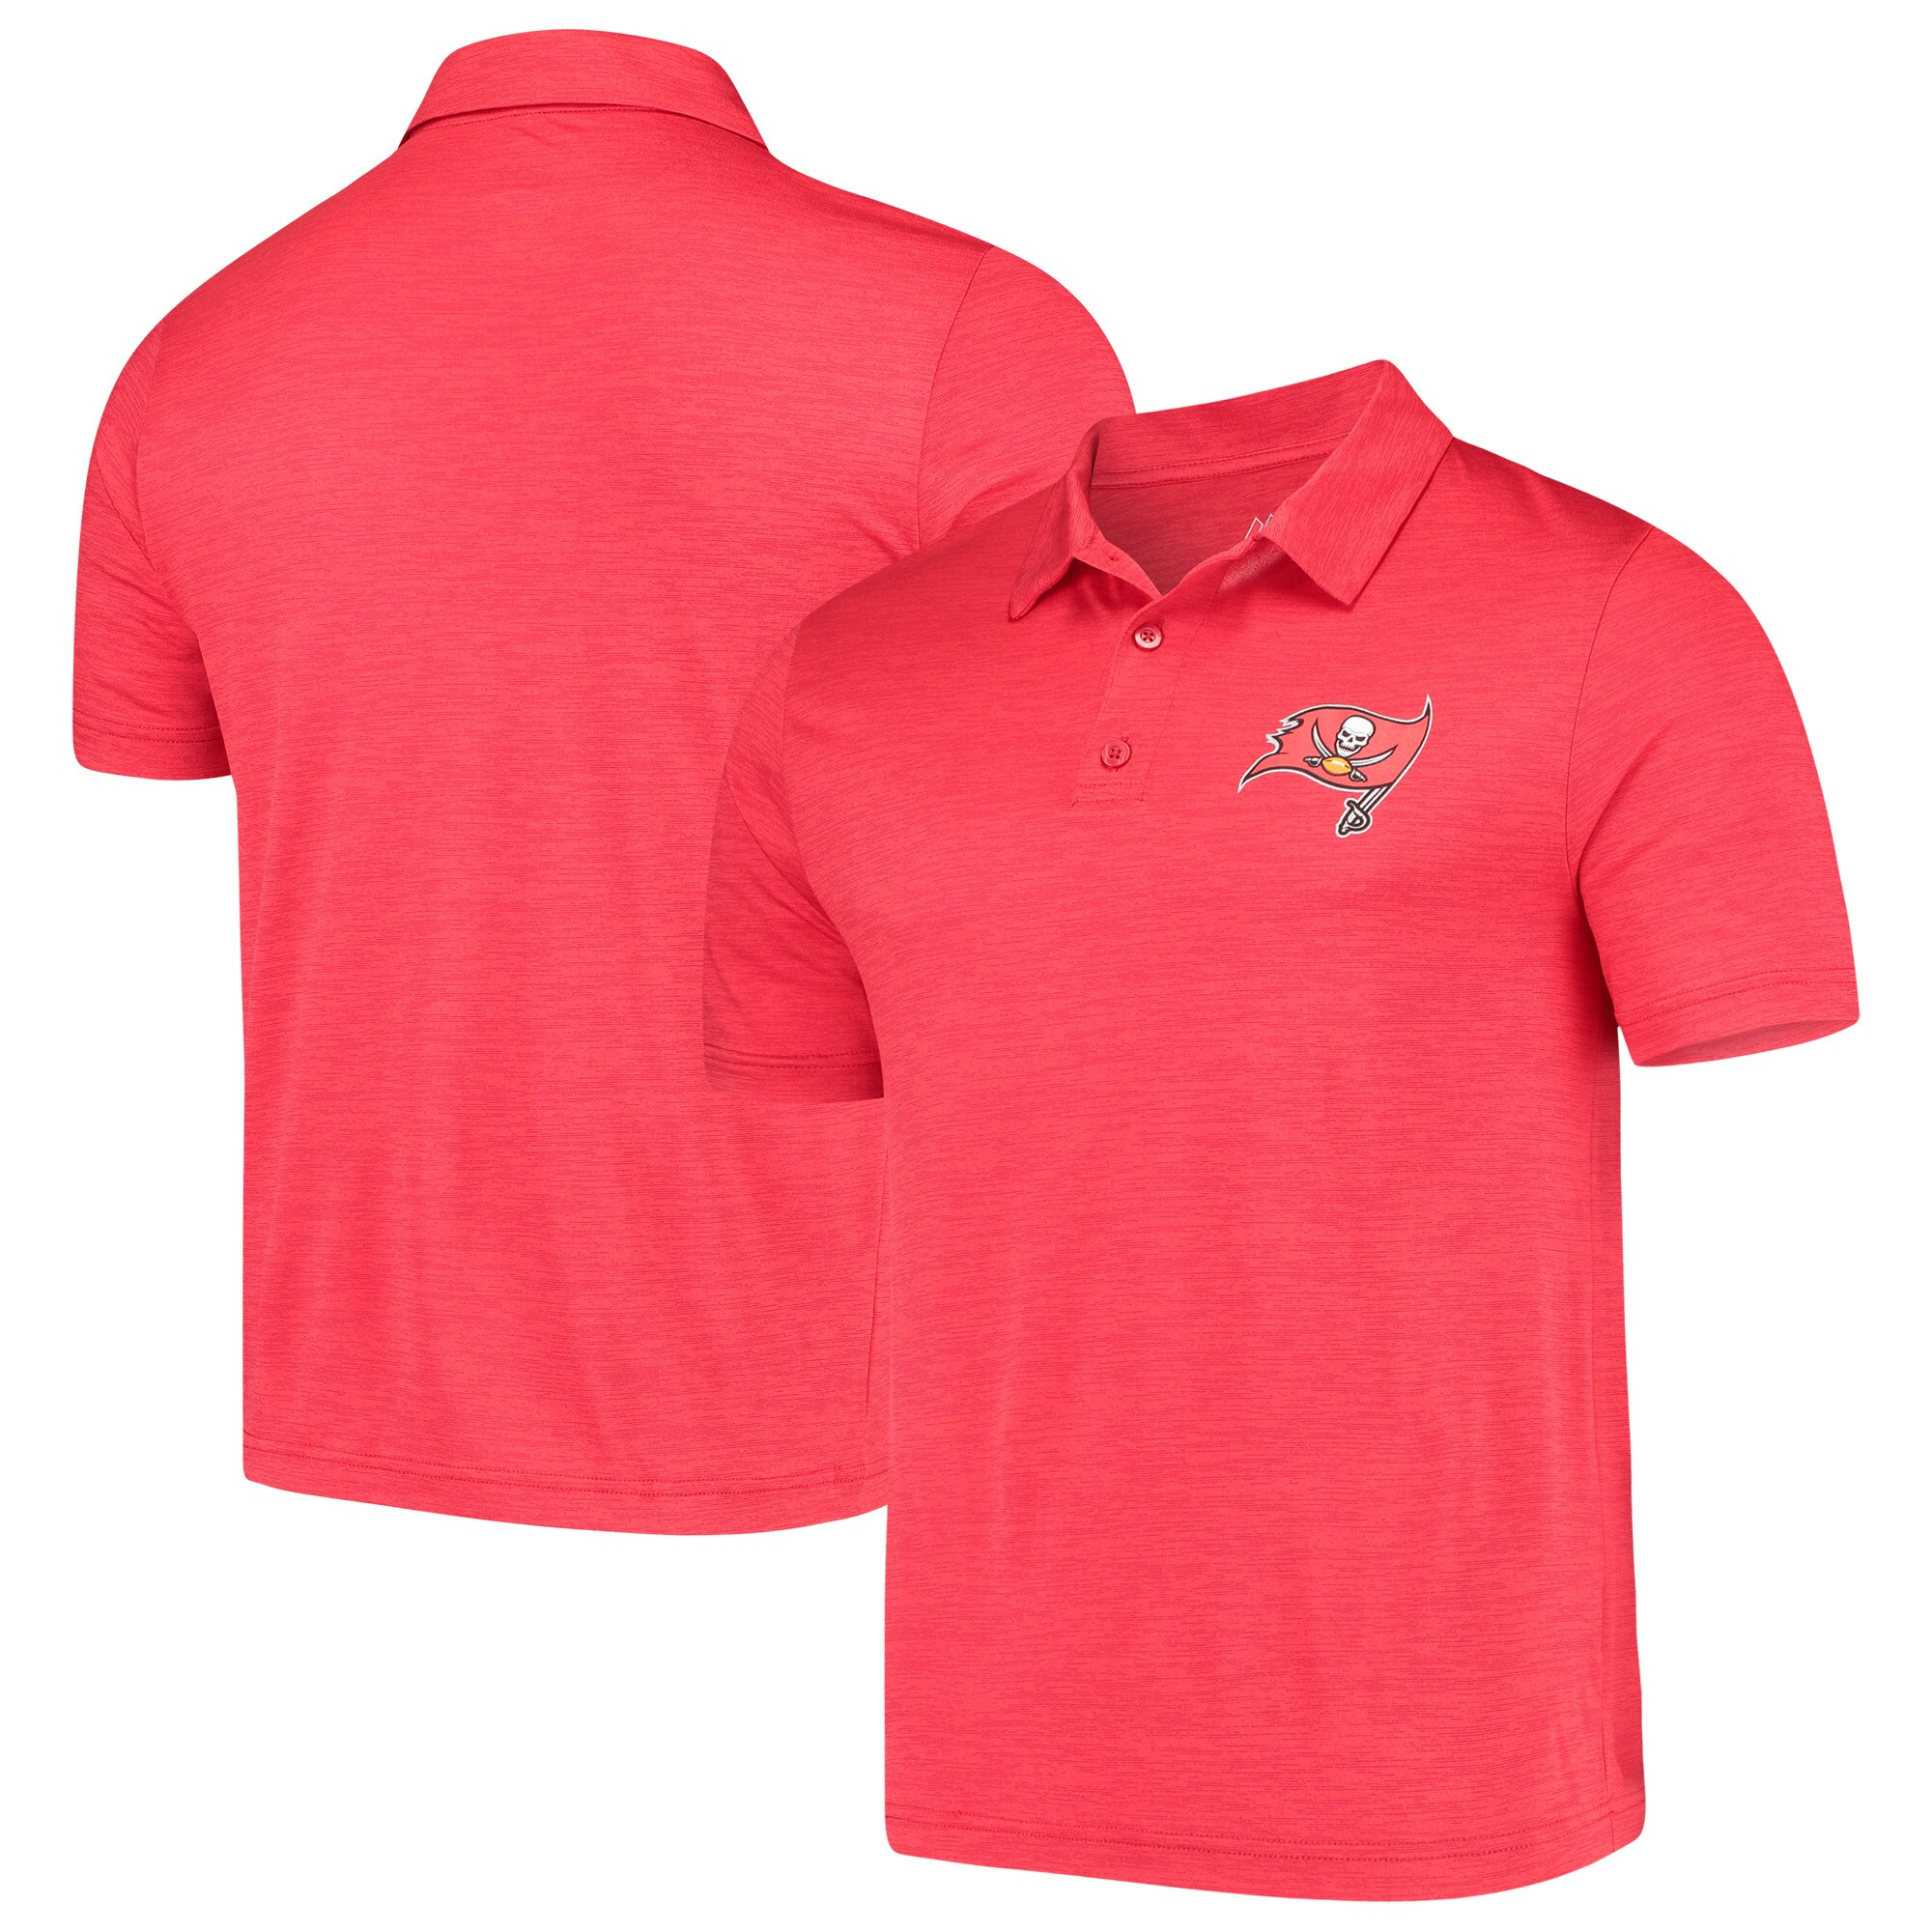 Tampa Bay Buccaneers Majestic Iconic Positive Production Polo - Heathered Red